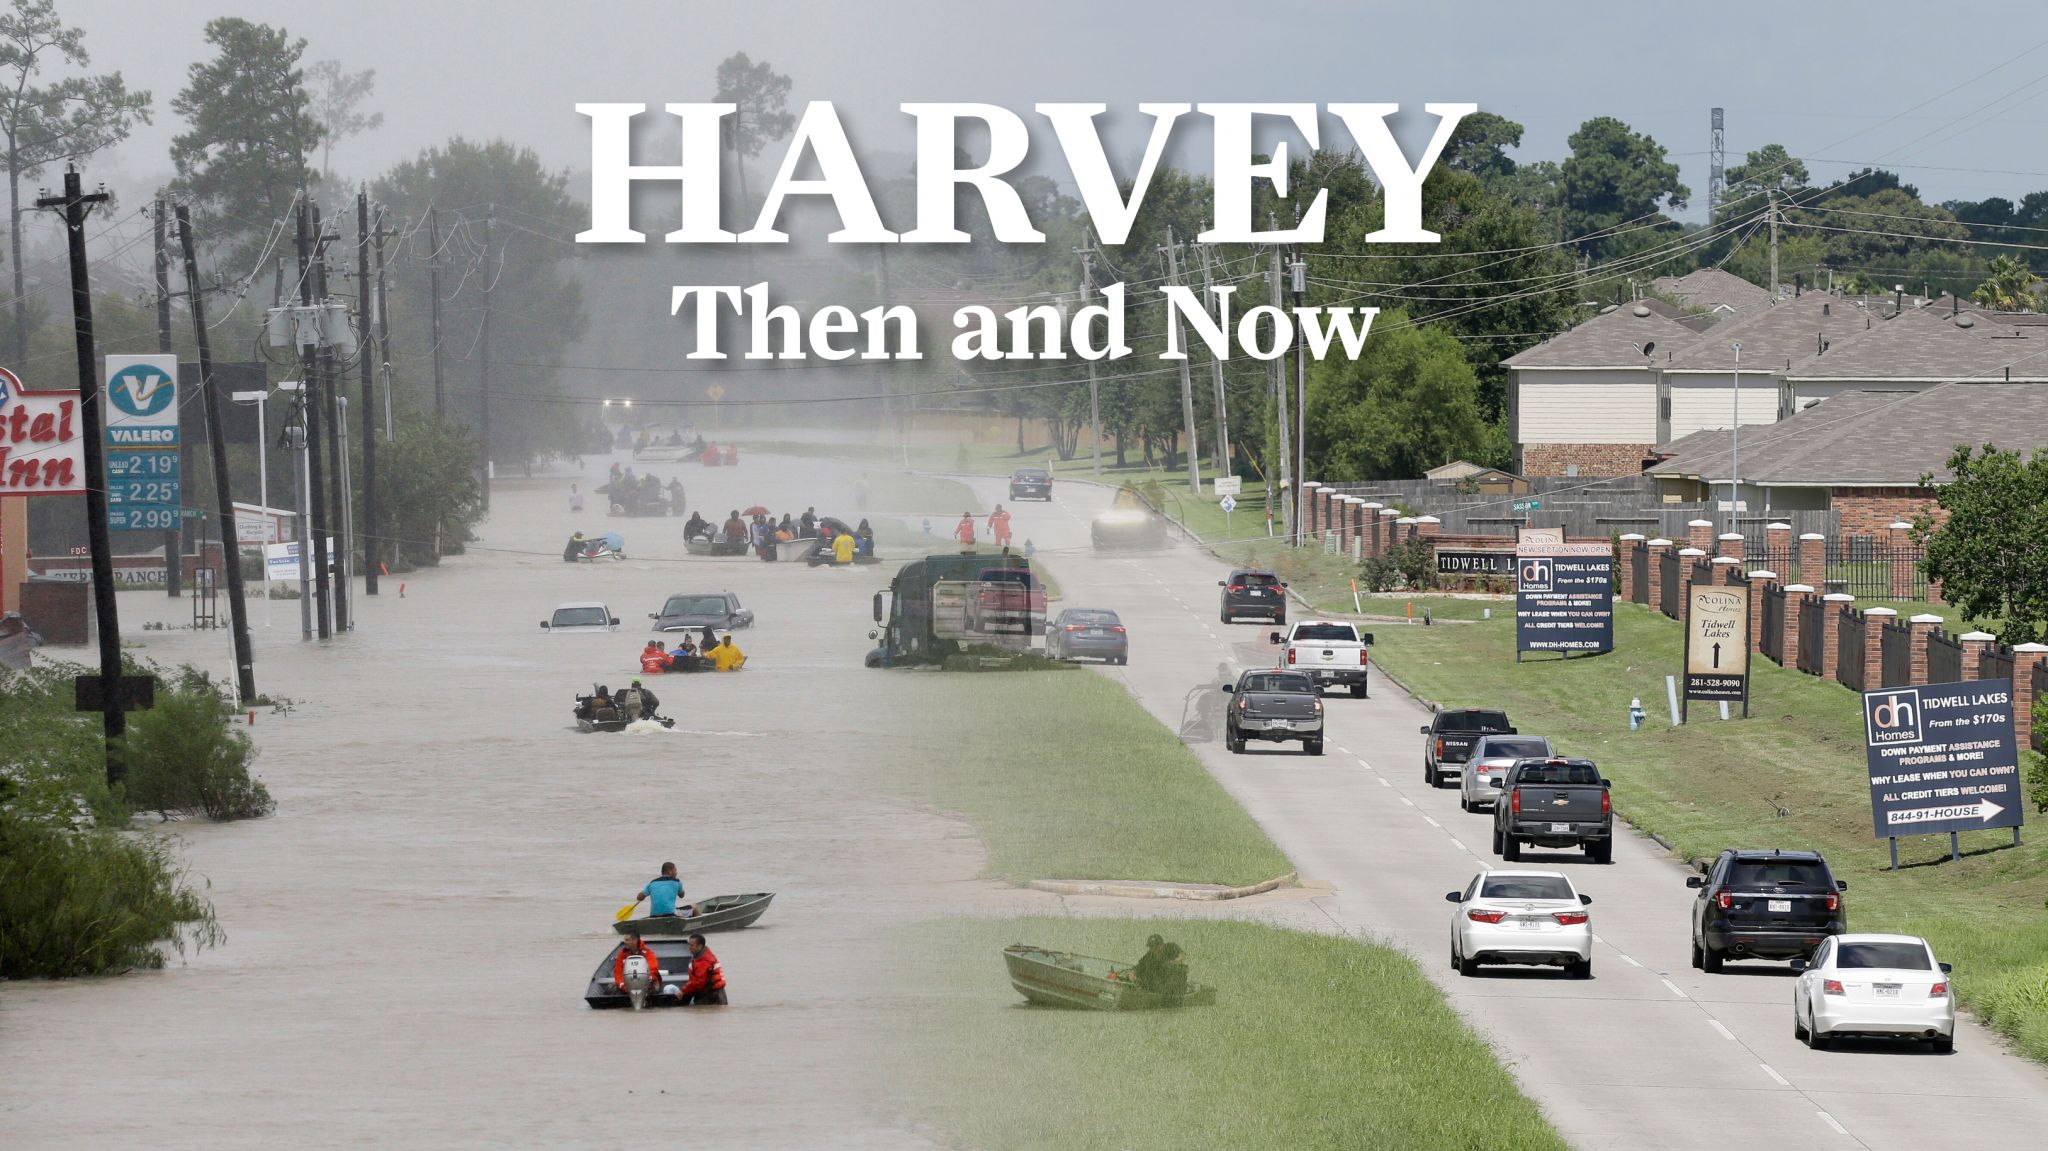 Dramatic Then And Now Photos Show How Hurricane Harvey